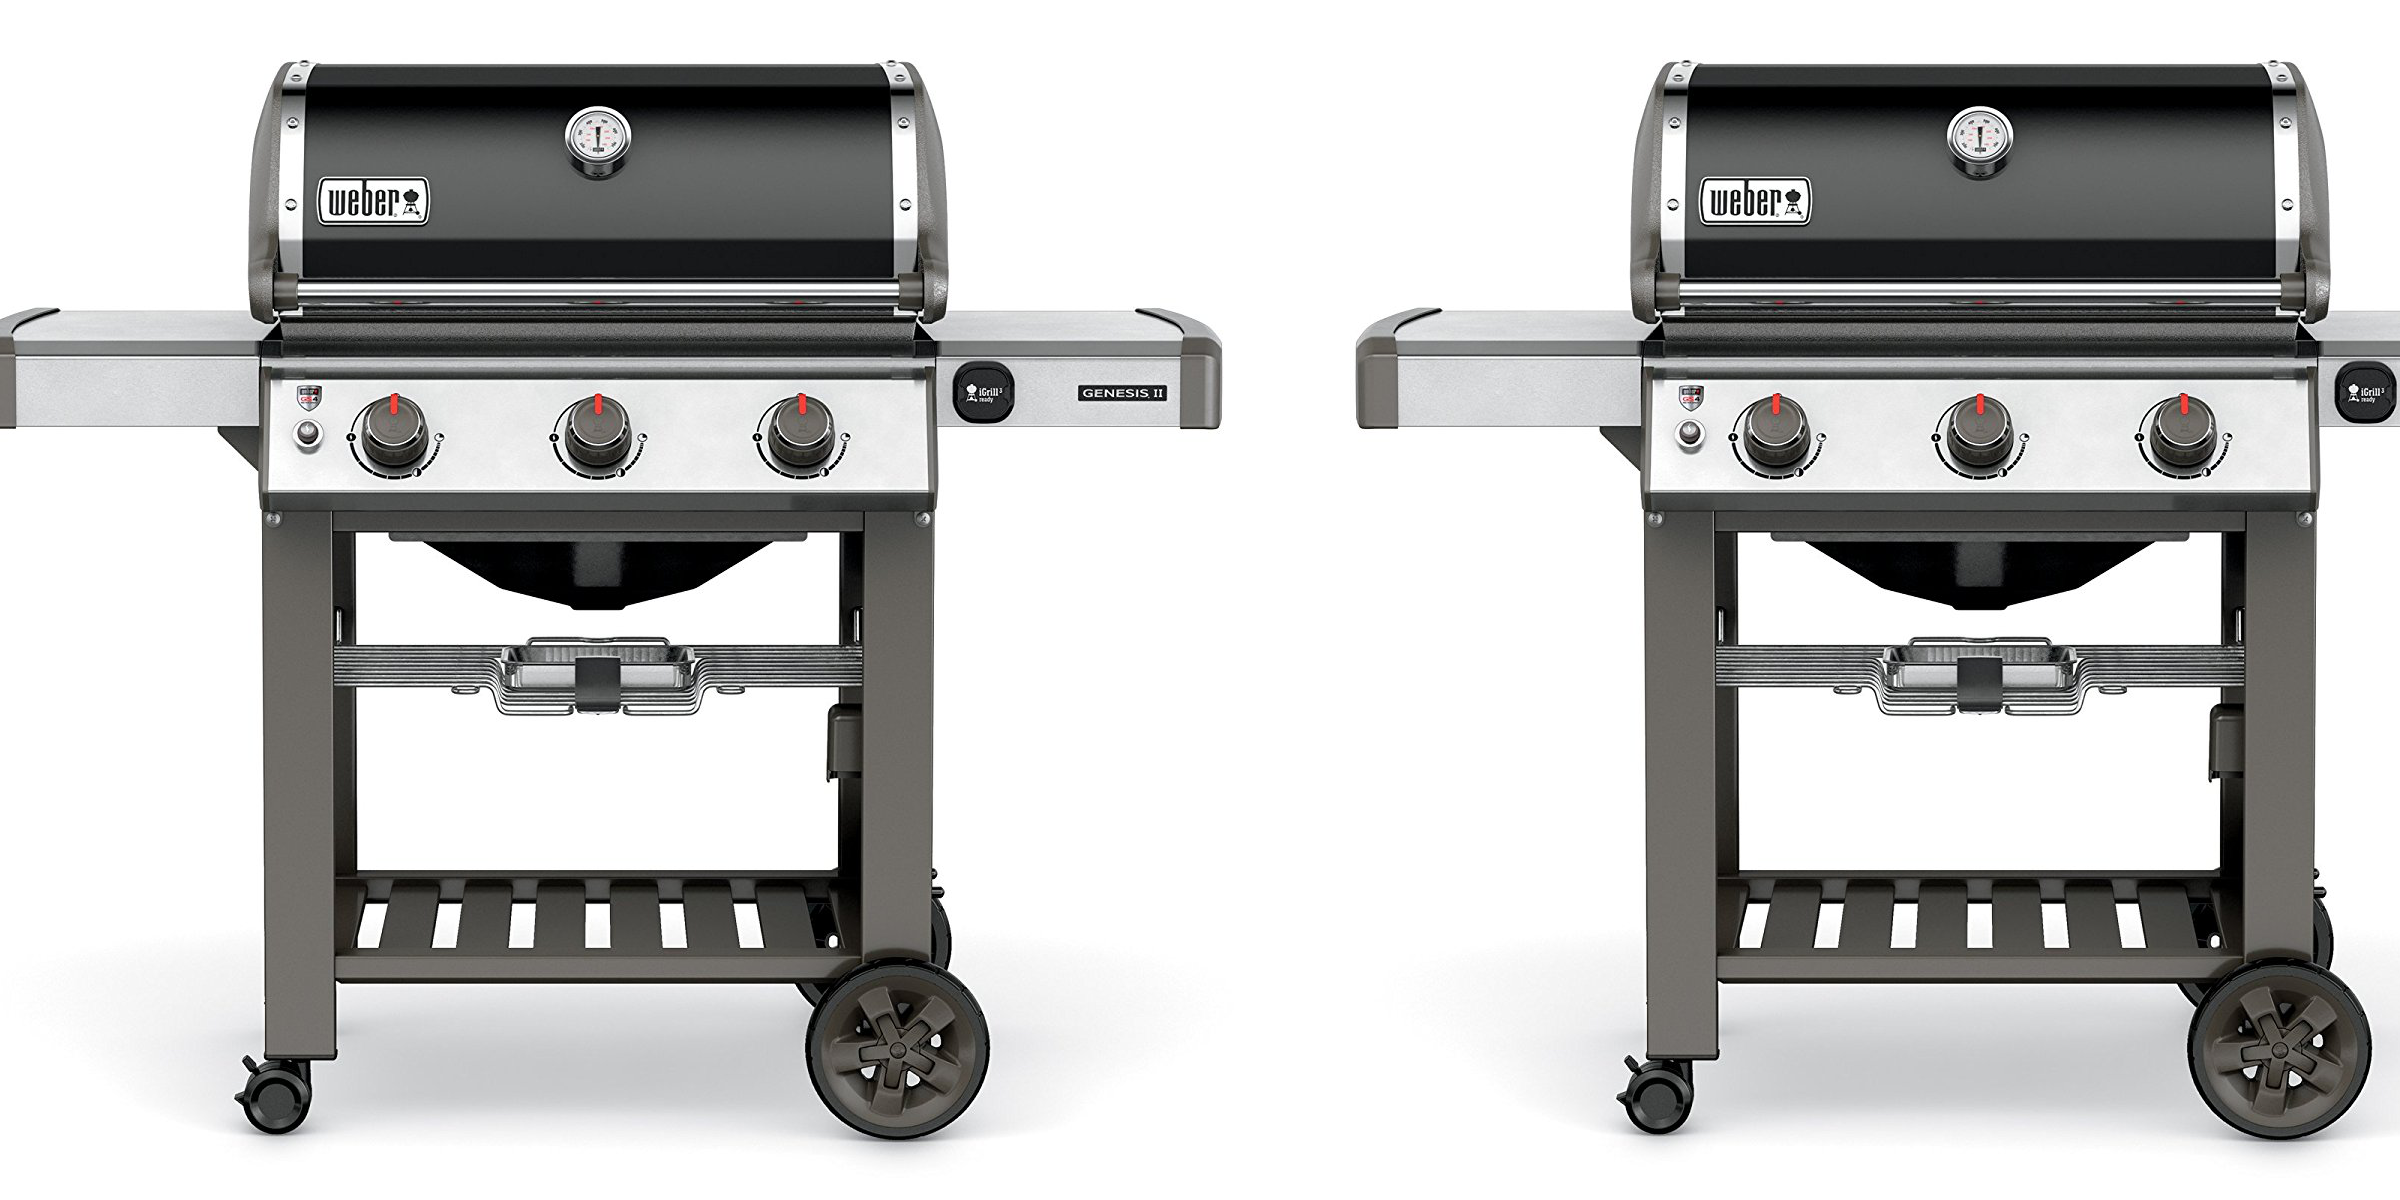 Amazon has the Weber Genesis II Natural Gas Grill at almost